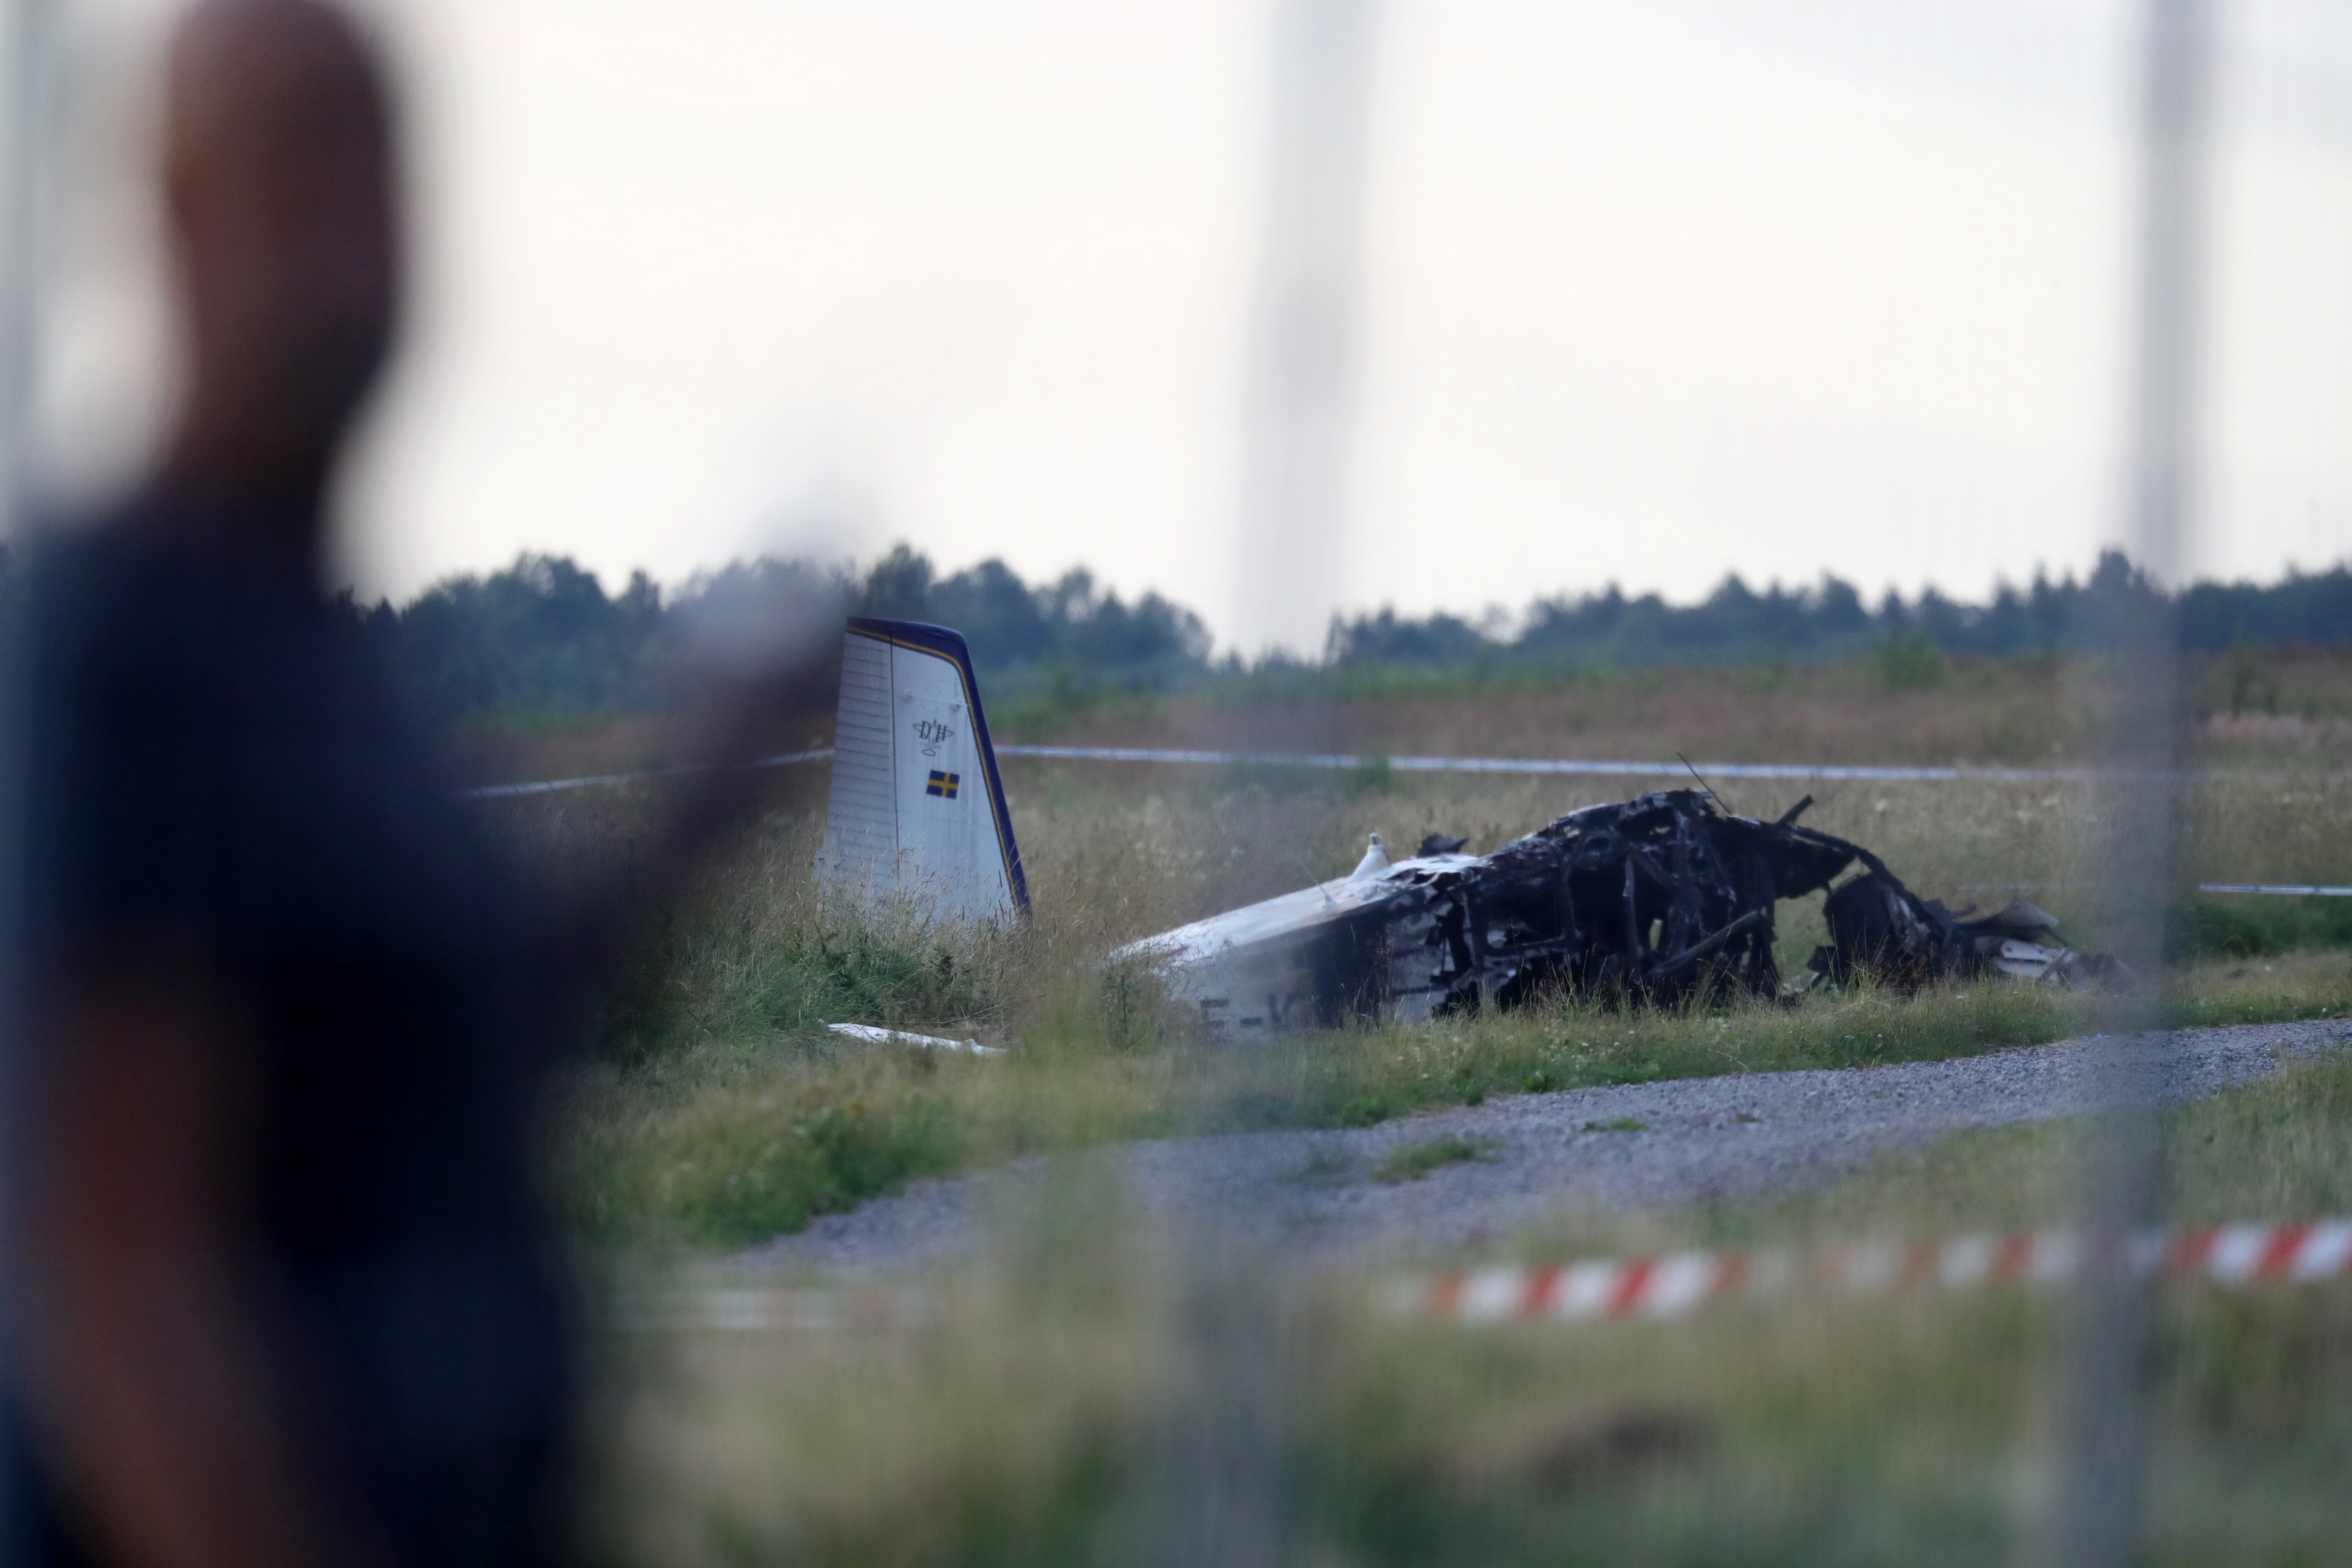 A small aircraft is seen after crashing at Orebro Airport, Orebro, Sweden,  July 8 2021.  TT News Agency/Jeppe Gustafsson via REUTERS